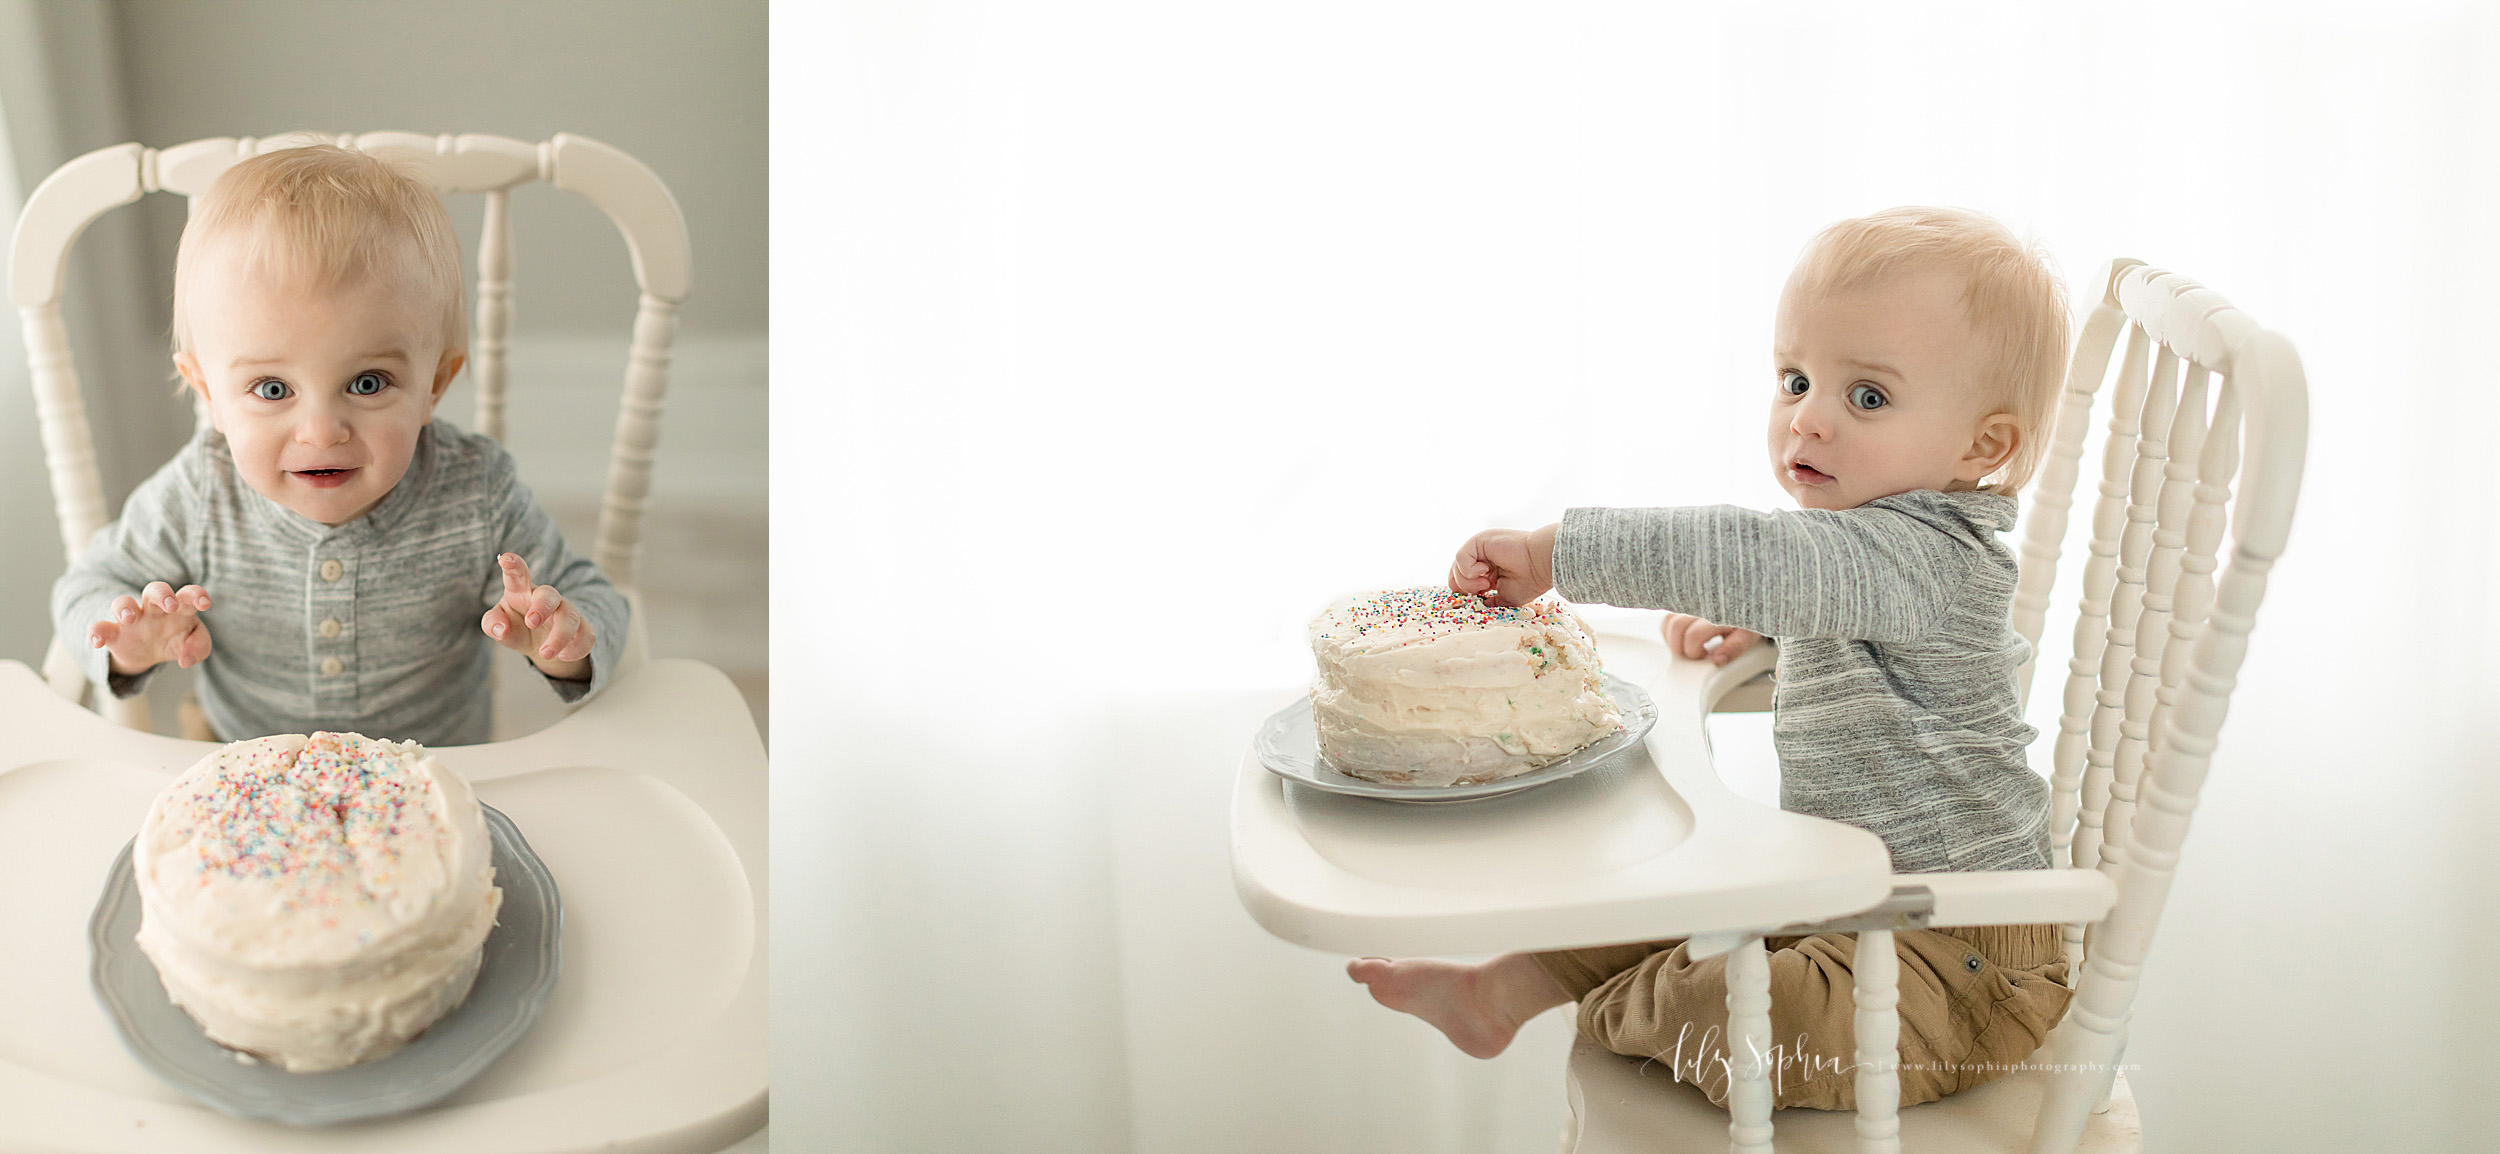 Split image photo of a first birthday boy in a natural light studio in Atlanta with his birthday cake.  The little boy is sitting in an antique high chair He has the cake on the tray.  In one photo you see his excitement as he gets ready to dive in.  In the other photo you see him sticking his hand into his first birthday cake.